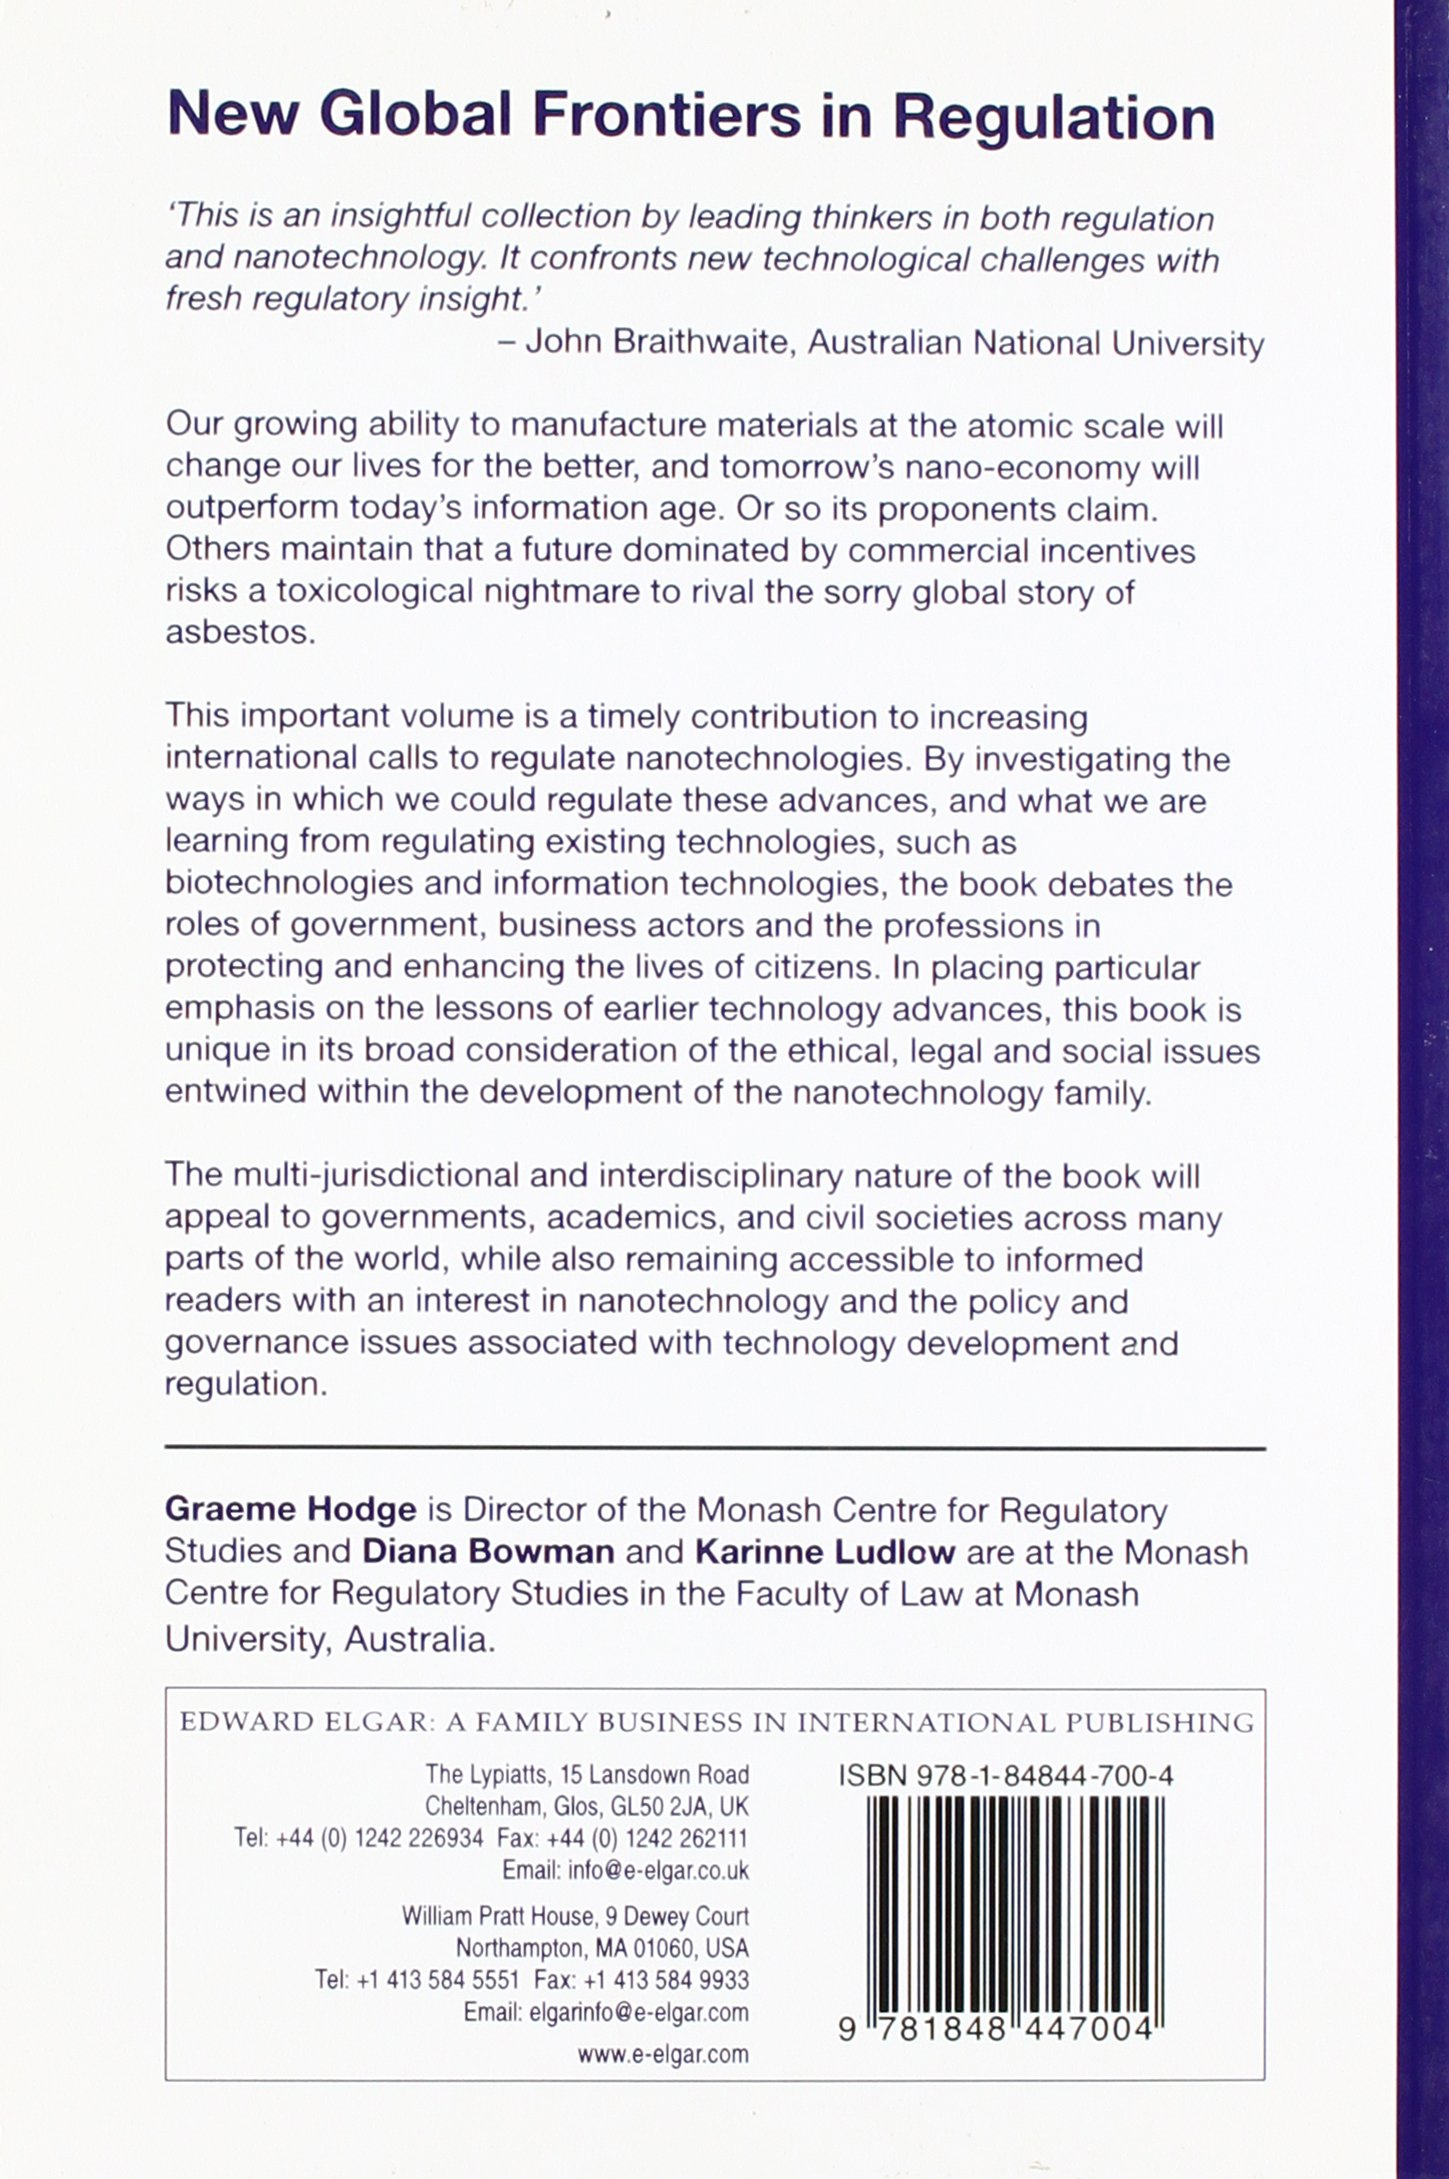 New Global Frontiers in Regulation: The Age of Nanotechnology (Monash  Studies in Global Movements Series): Amazon.co.uk: Graeme Hodge, Diana  Bowman, ...